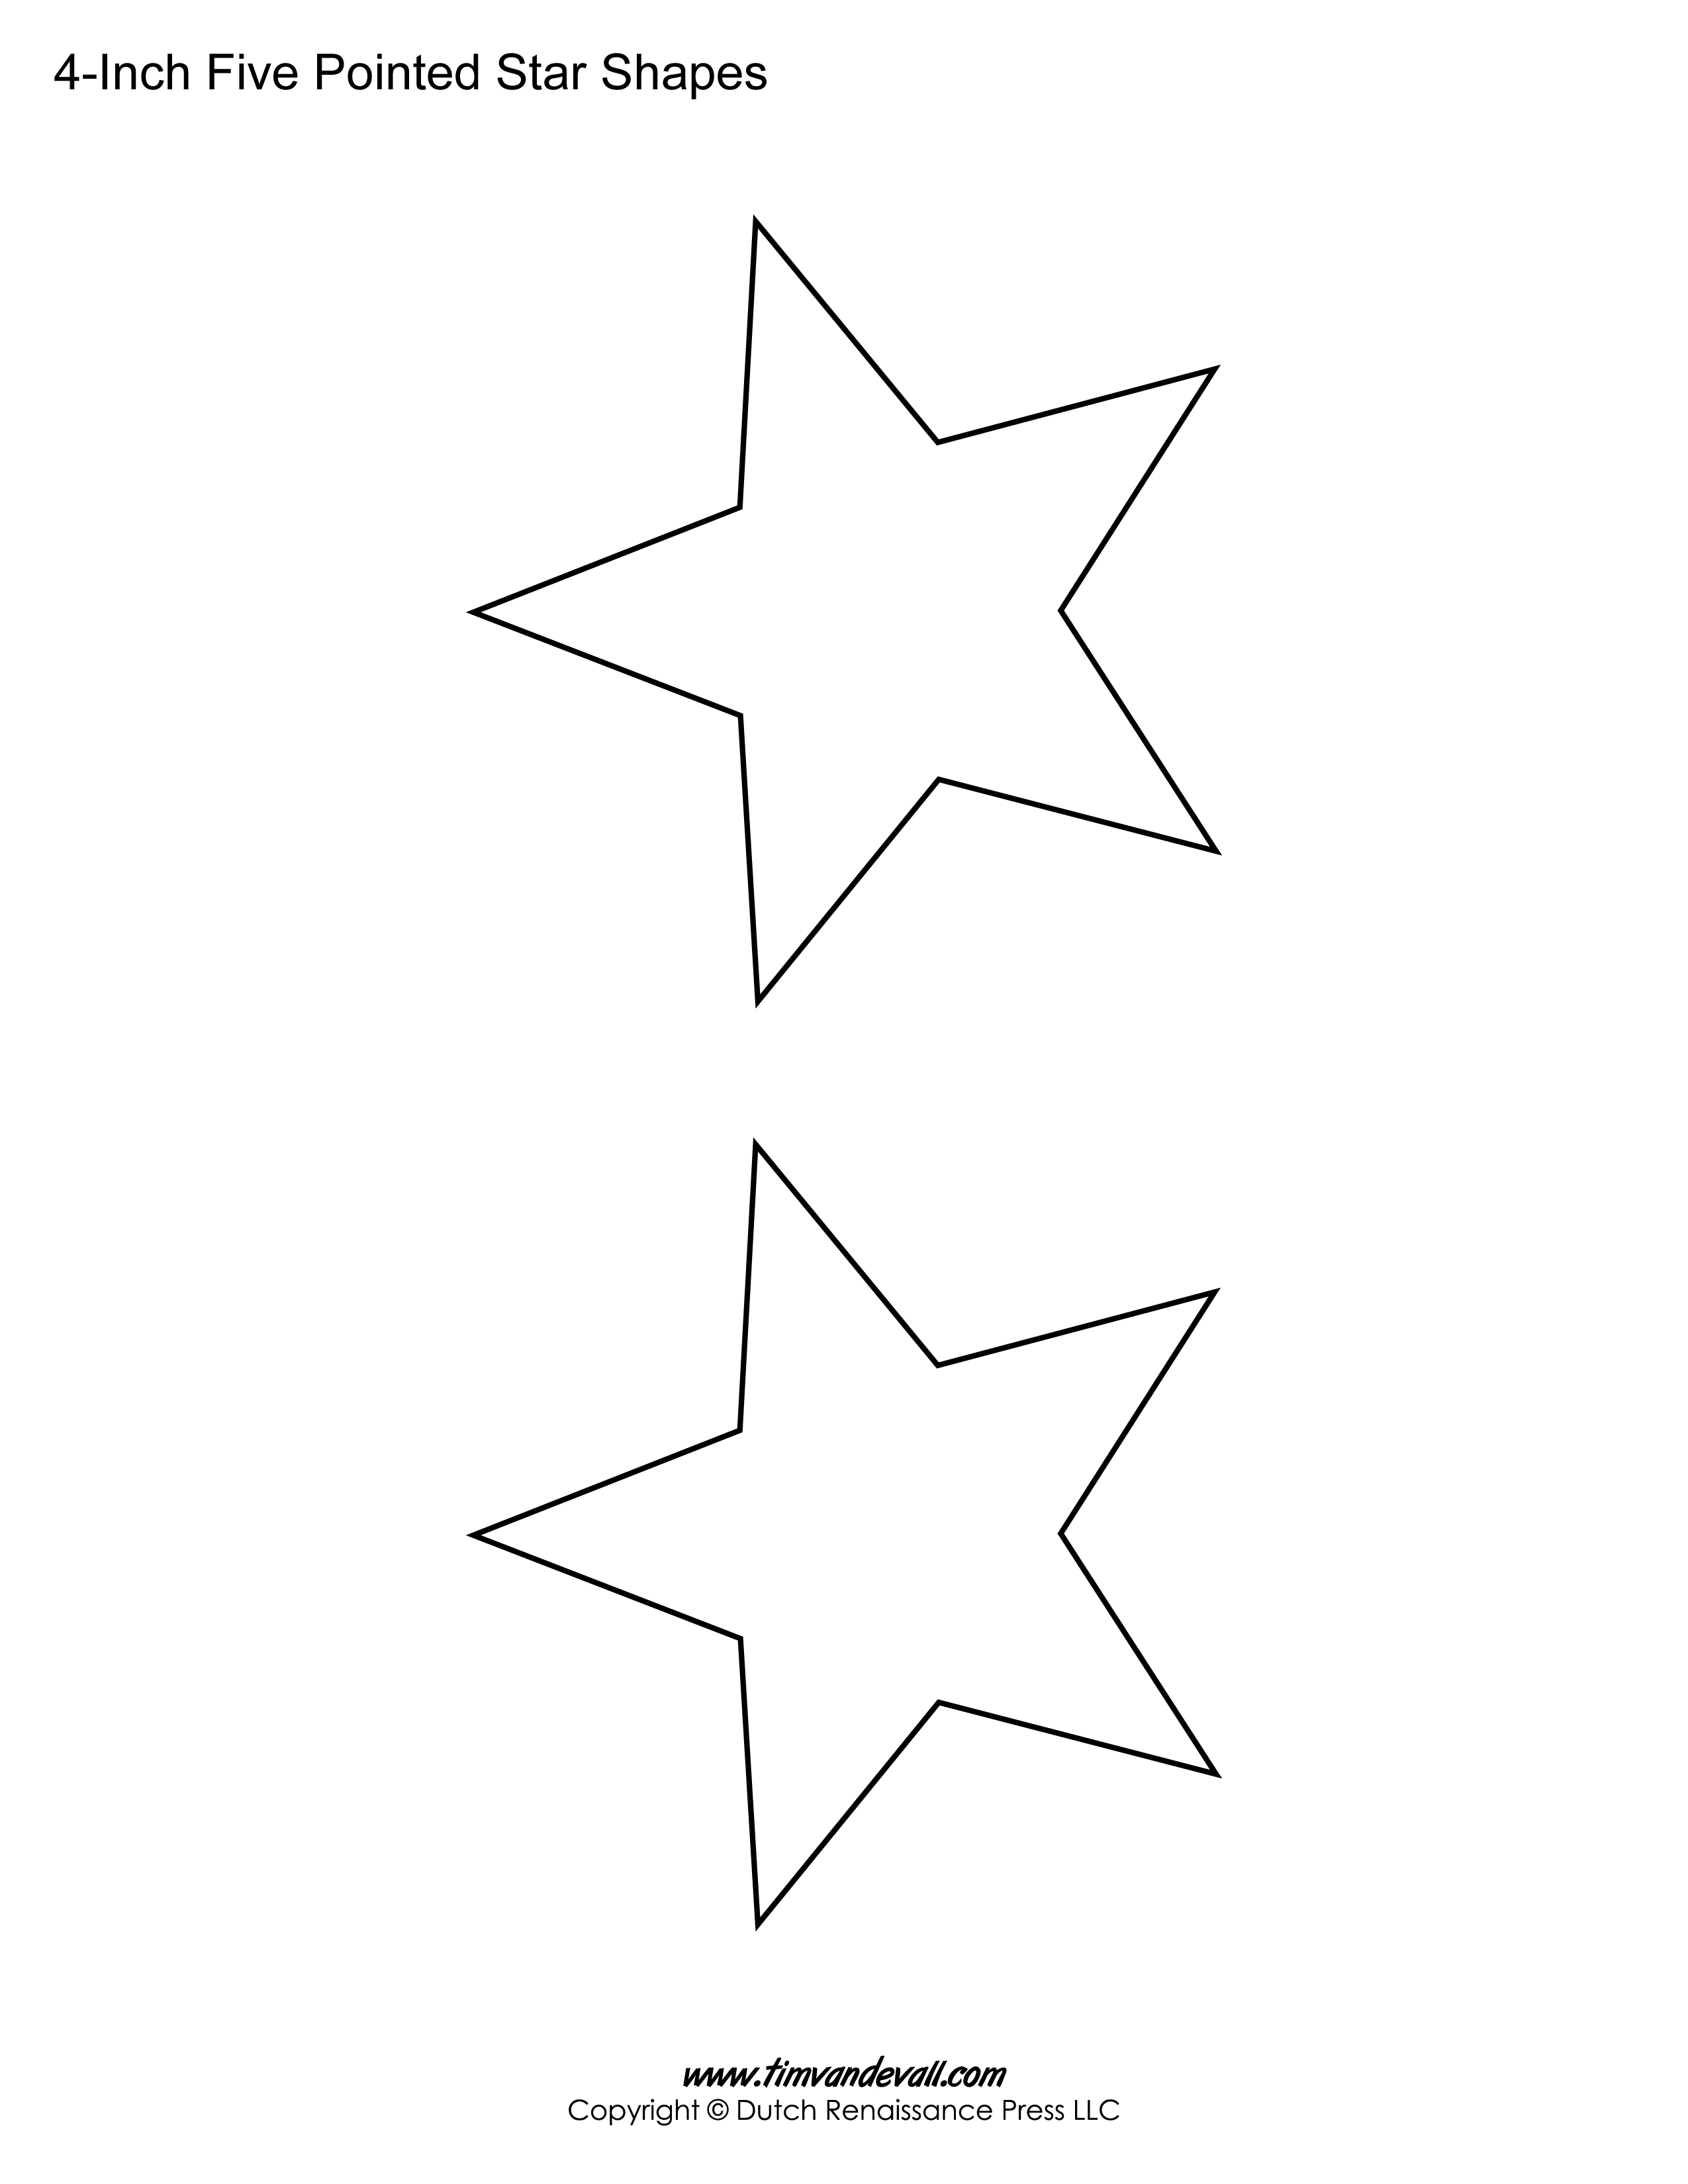 Printable Five Pointed Stars